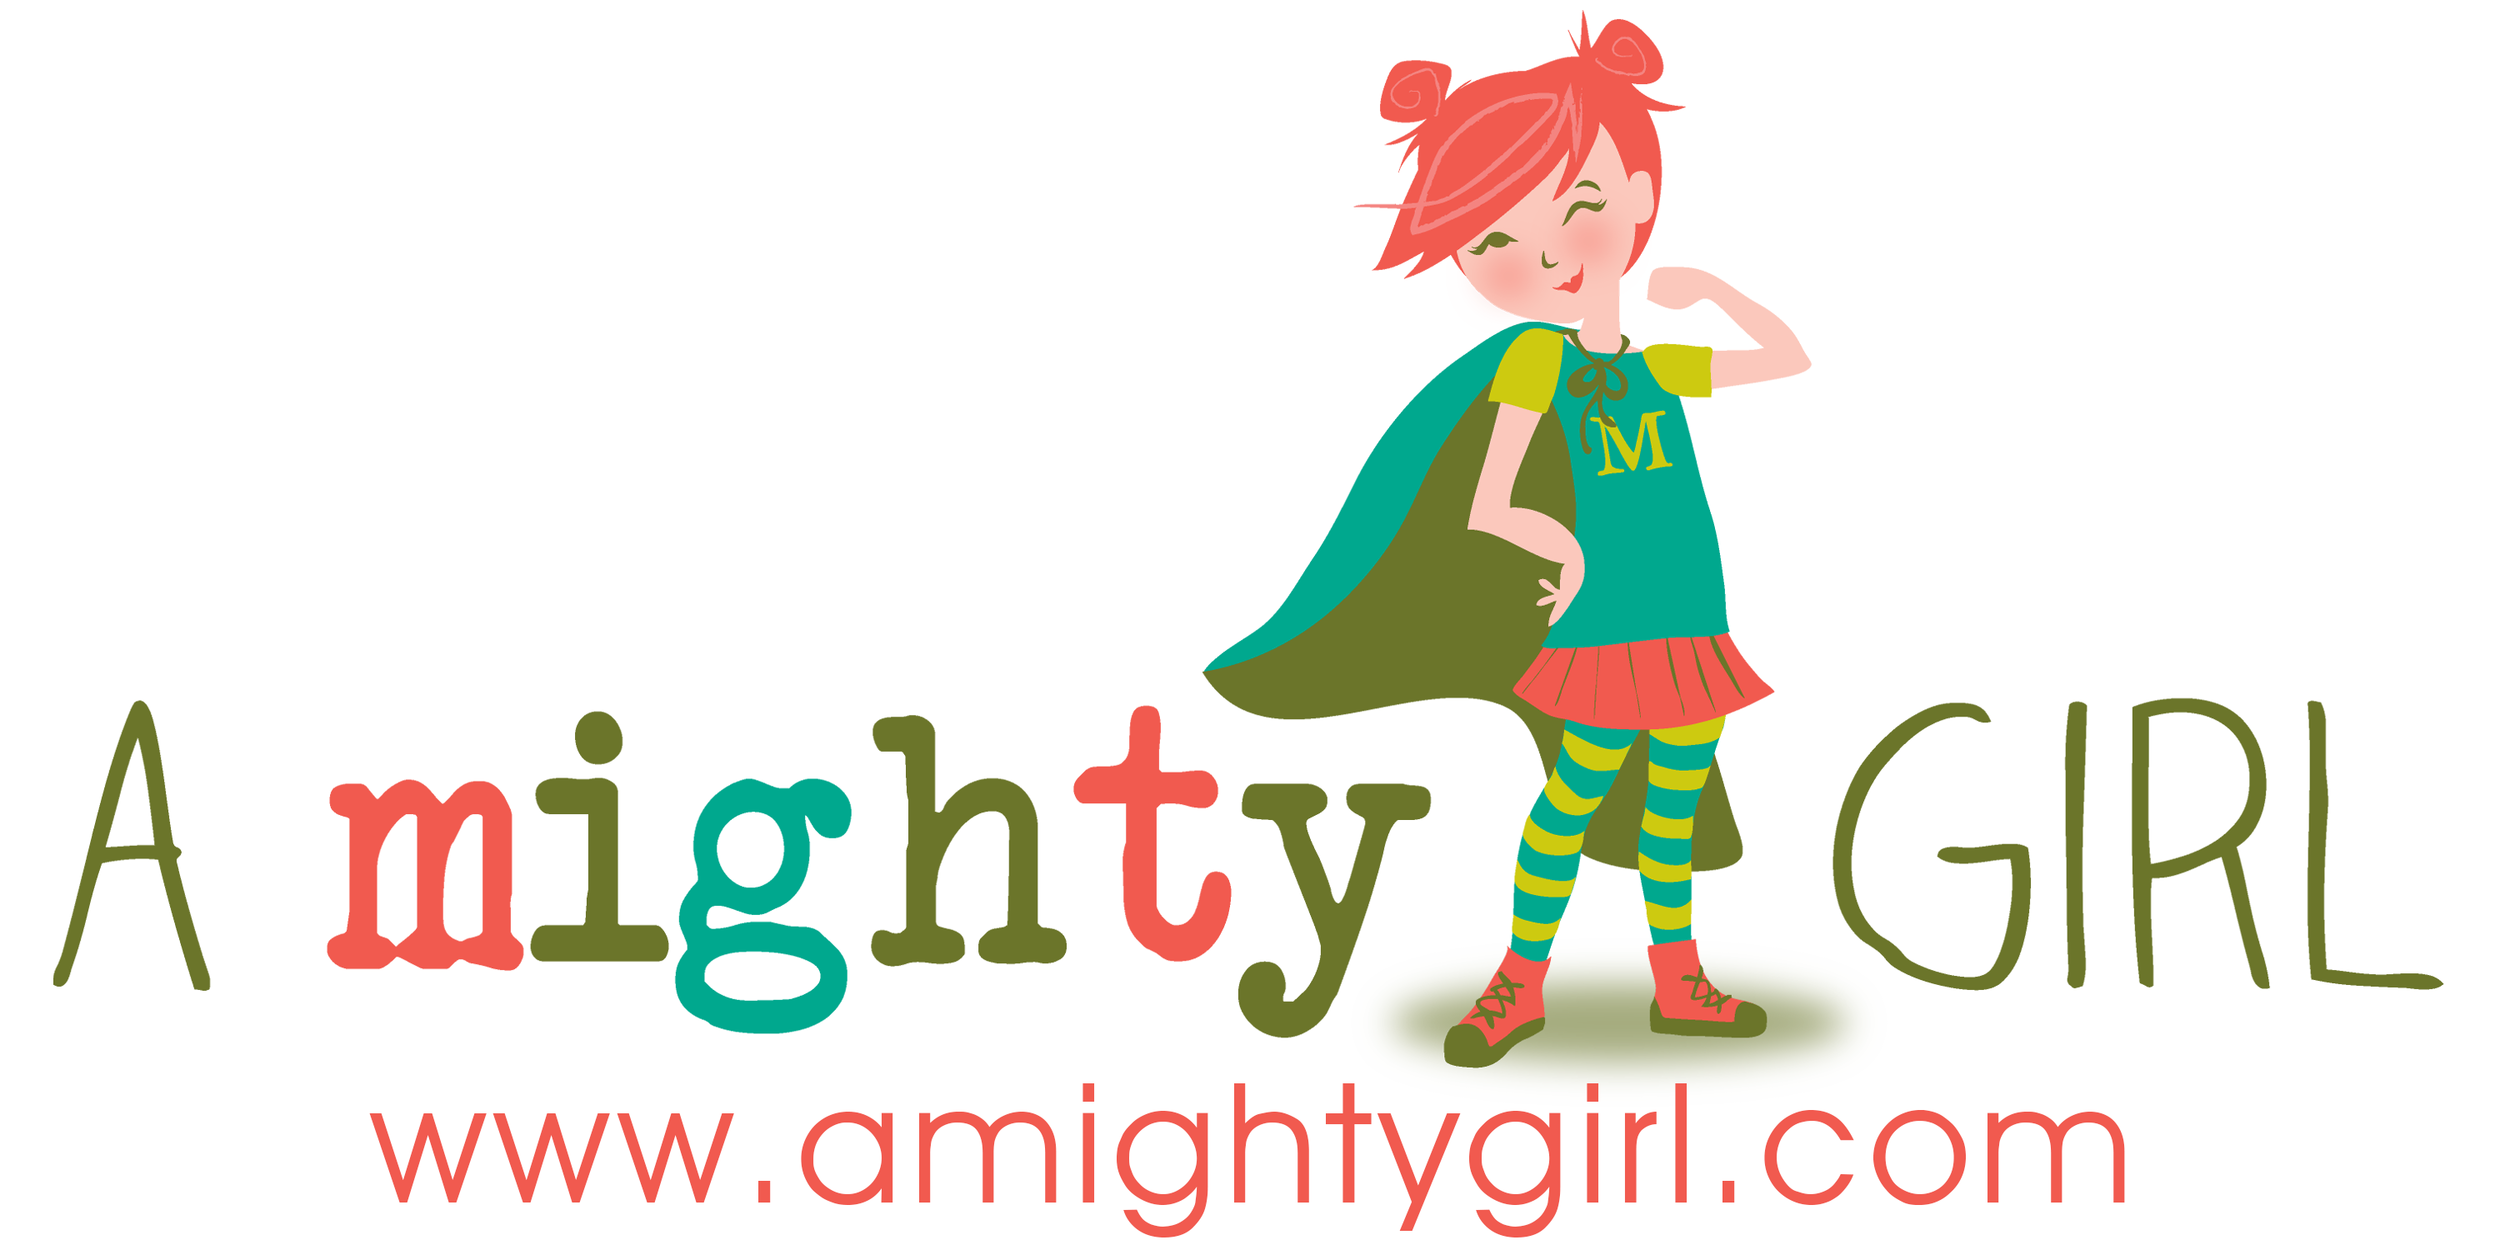 a-mighty-girl.png